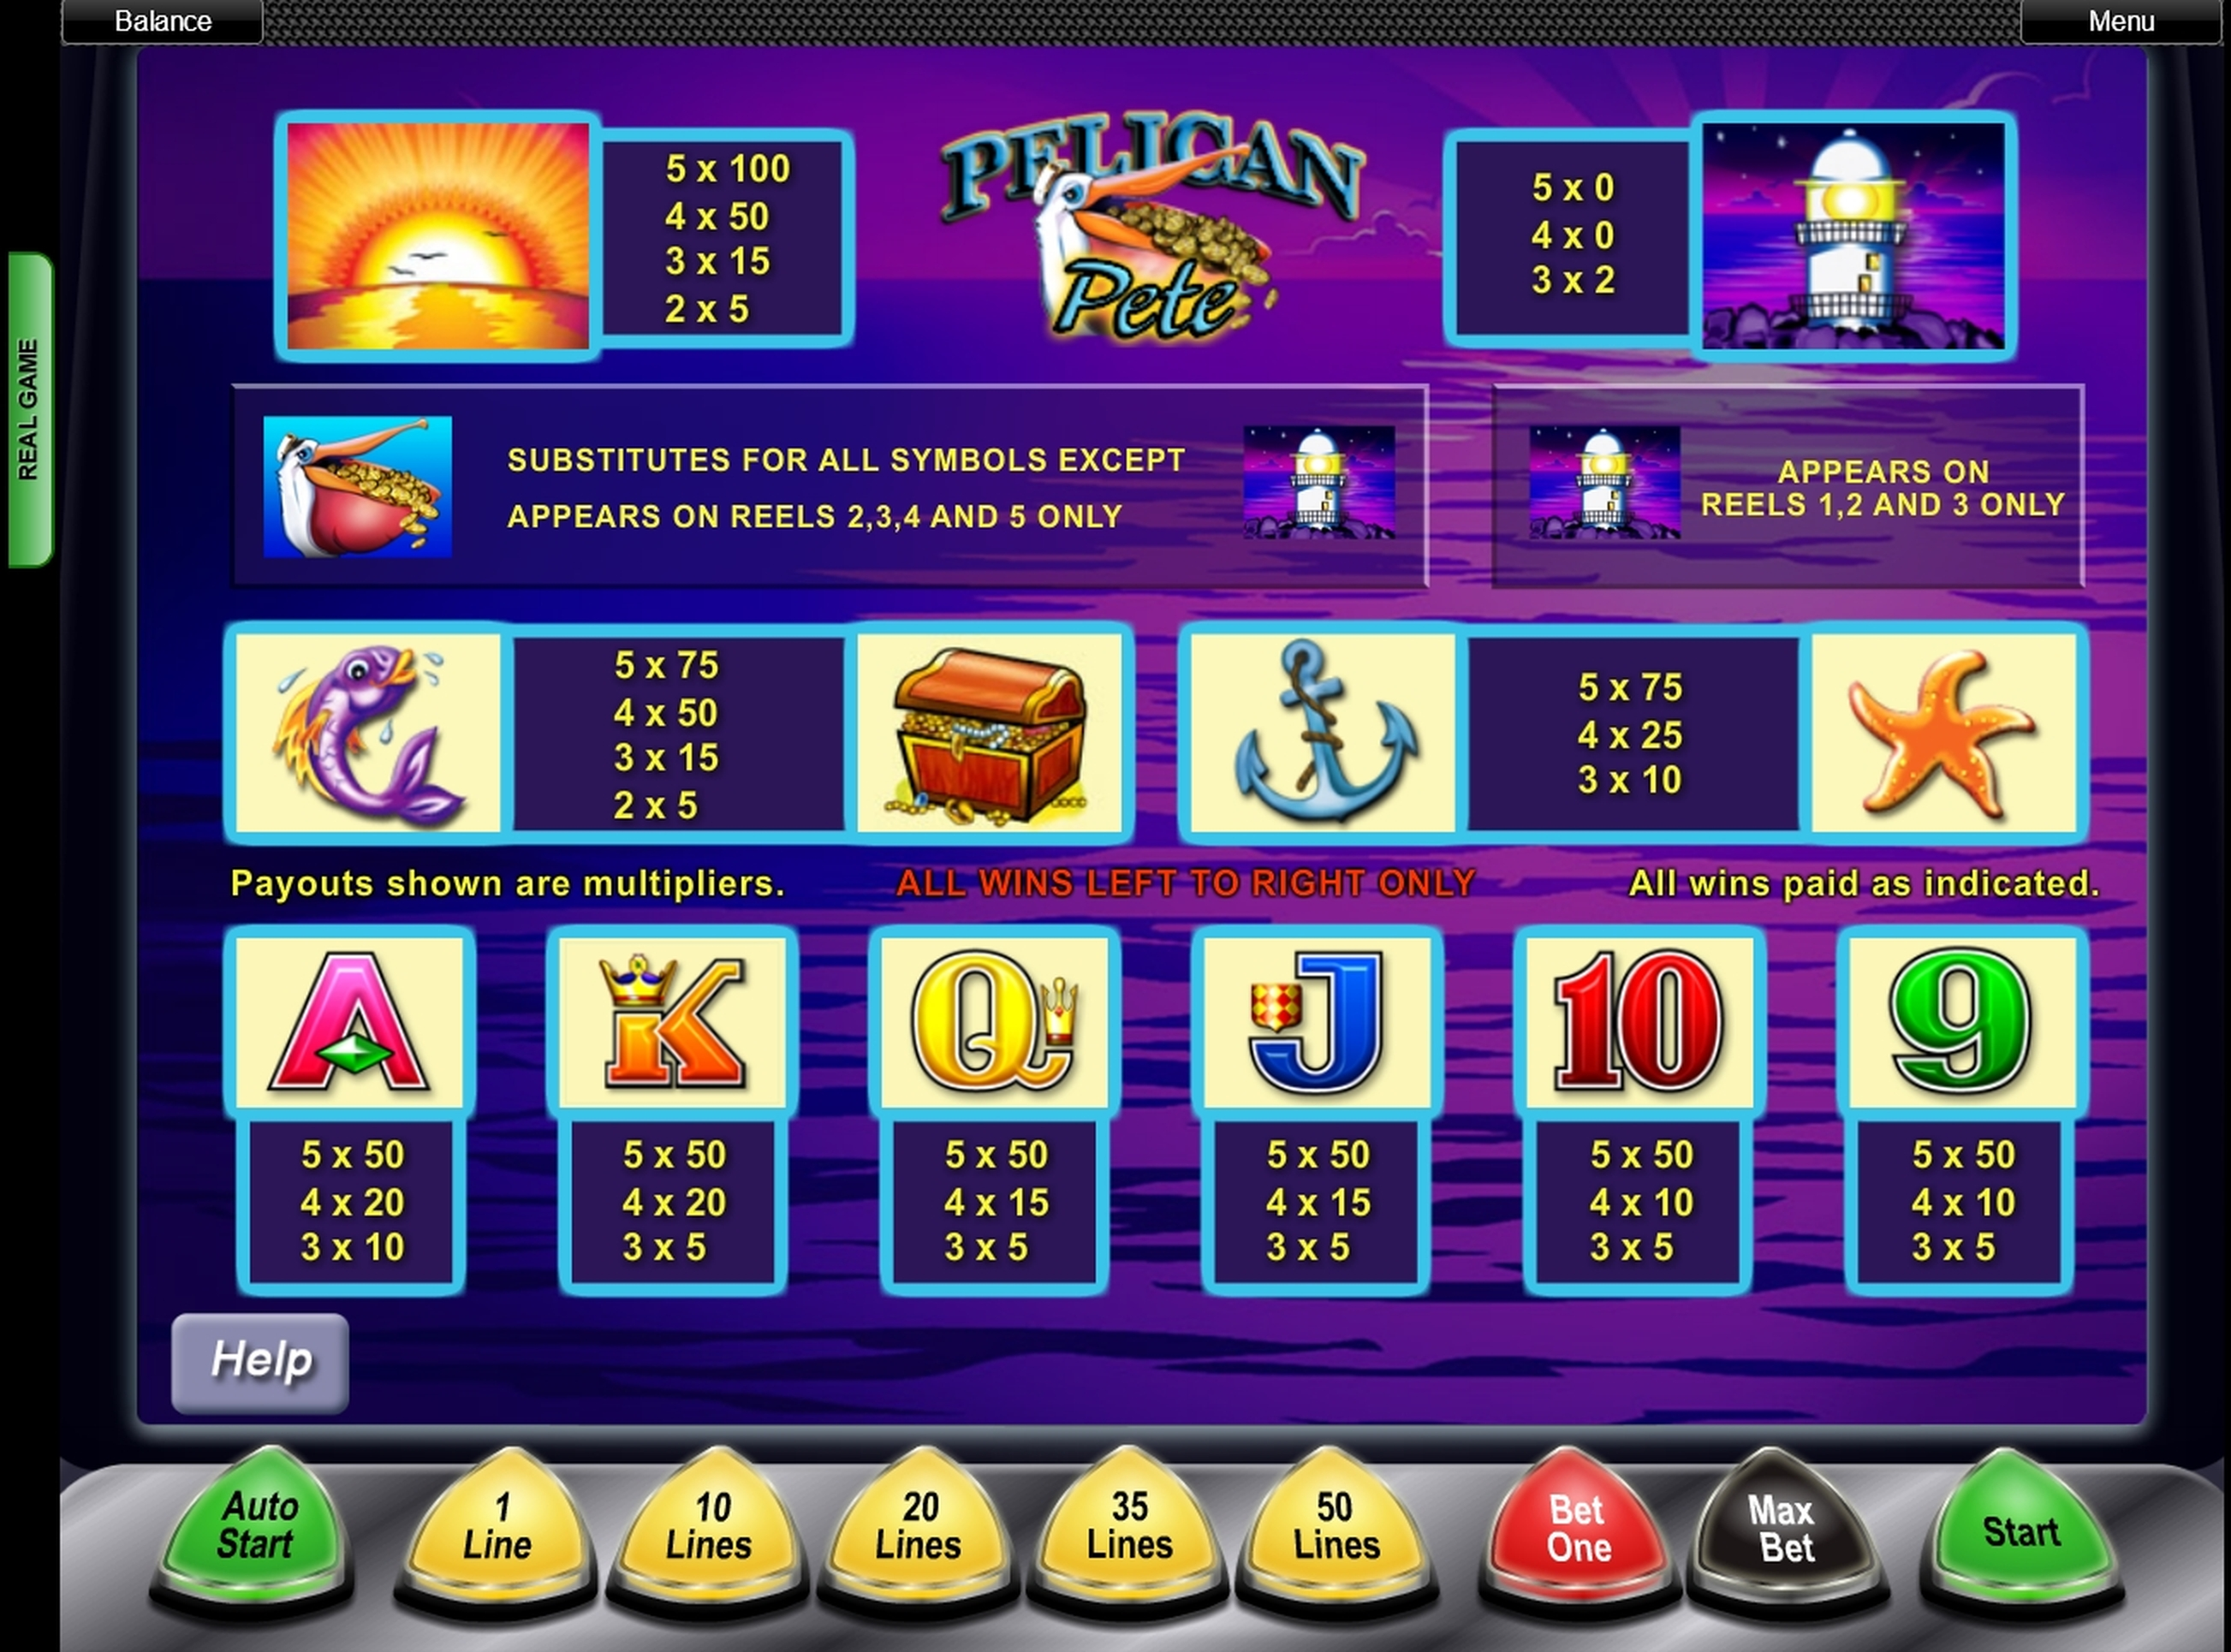 Info of Pelican Pete Slot Game by Aristocrat